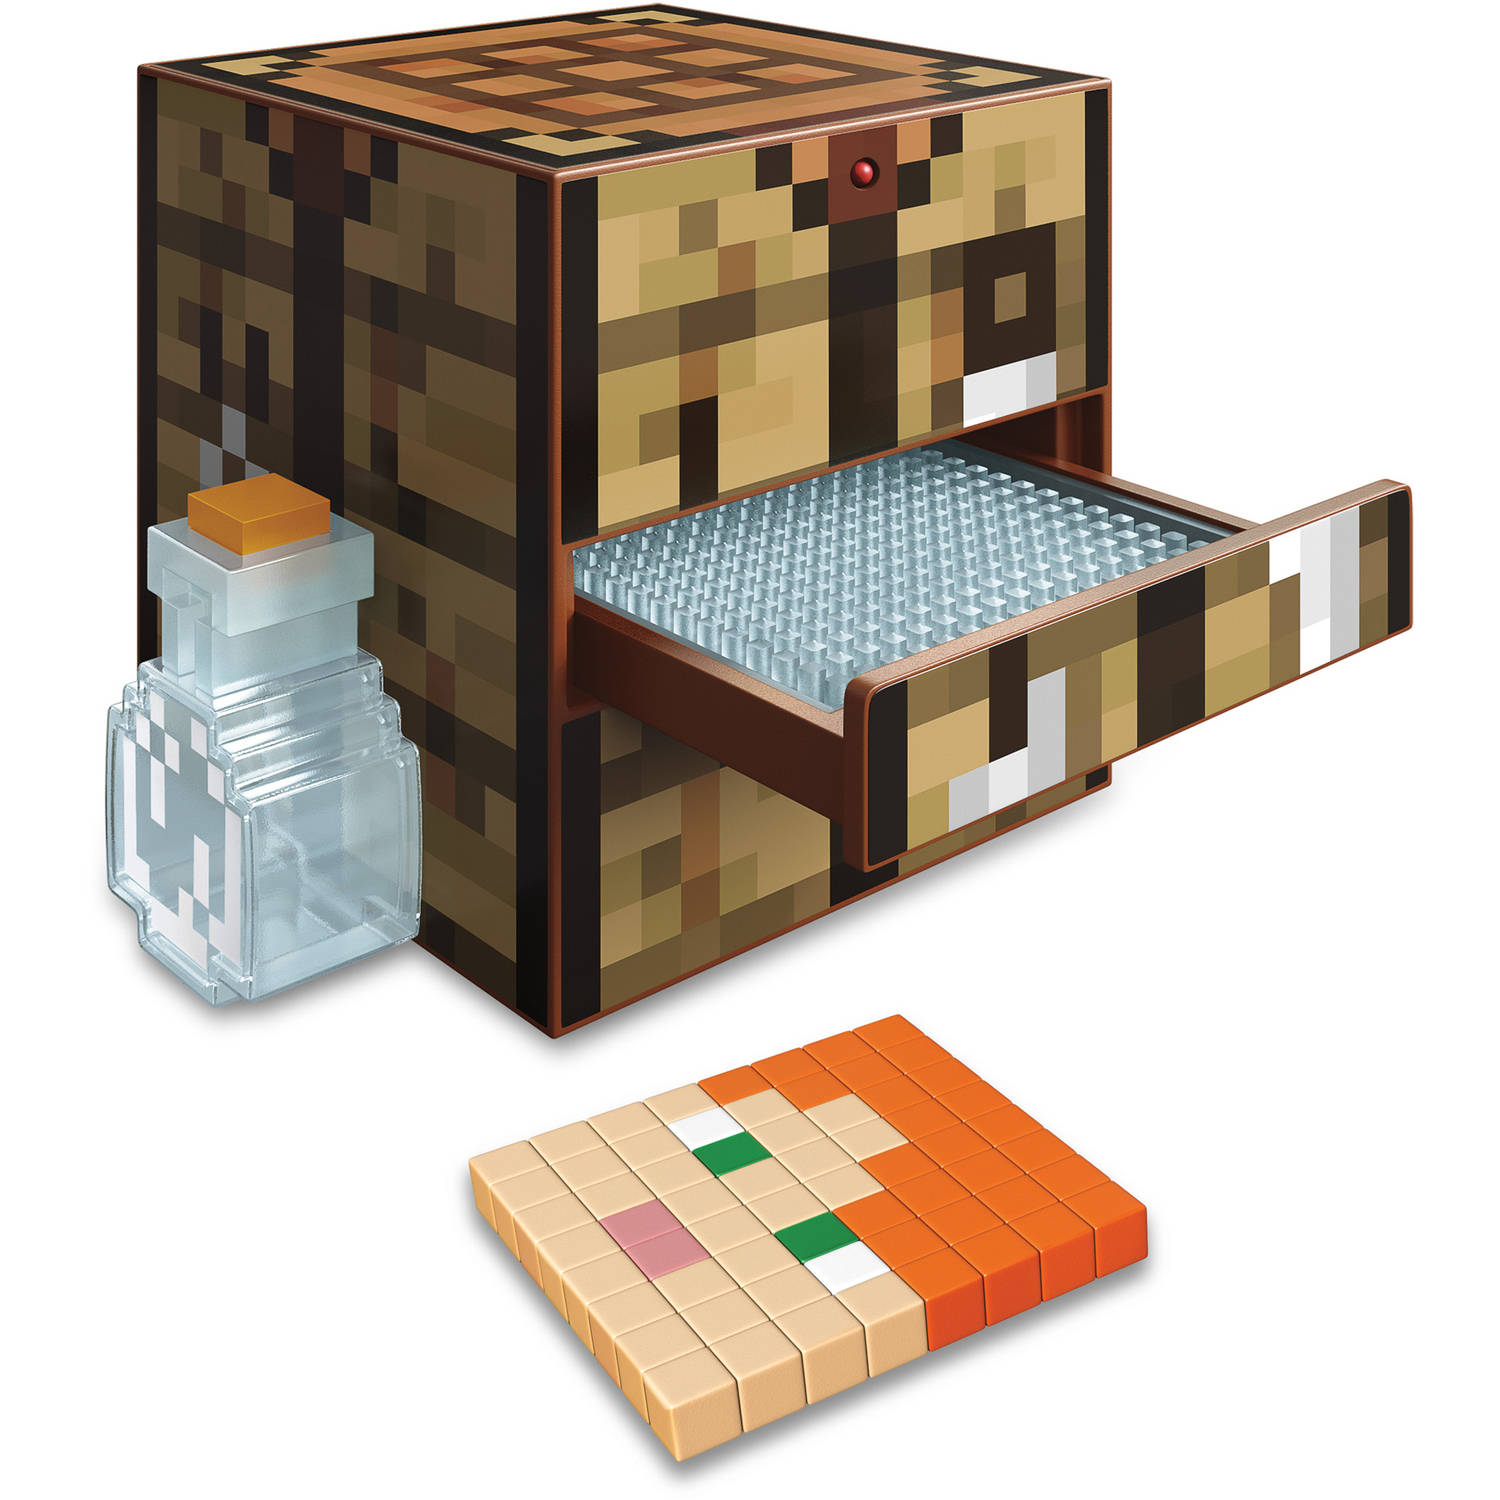 Minecraft Crafting Table With 10 Templates 1 500 Craft Cubes And